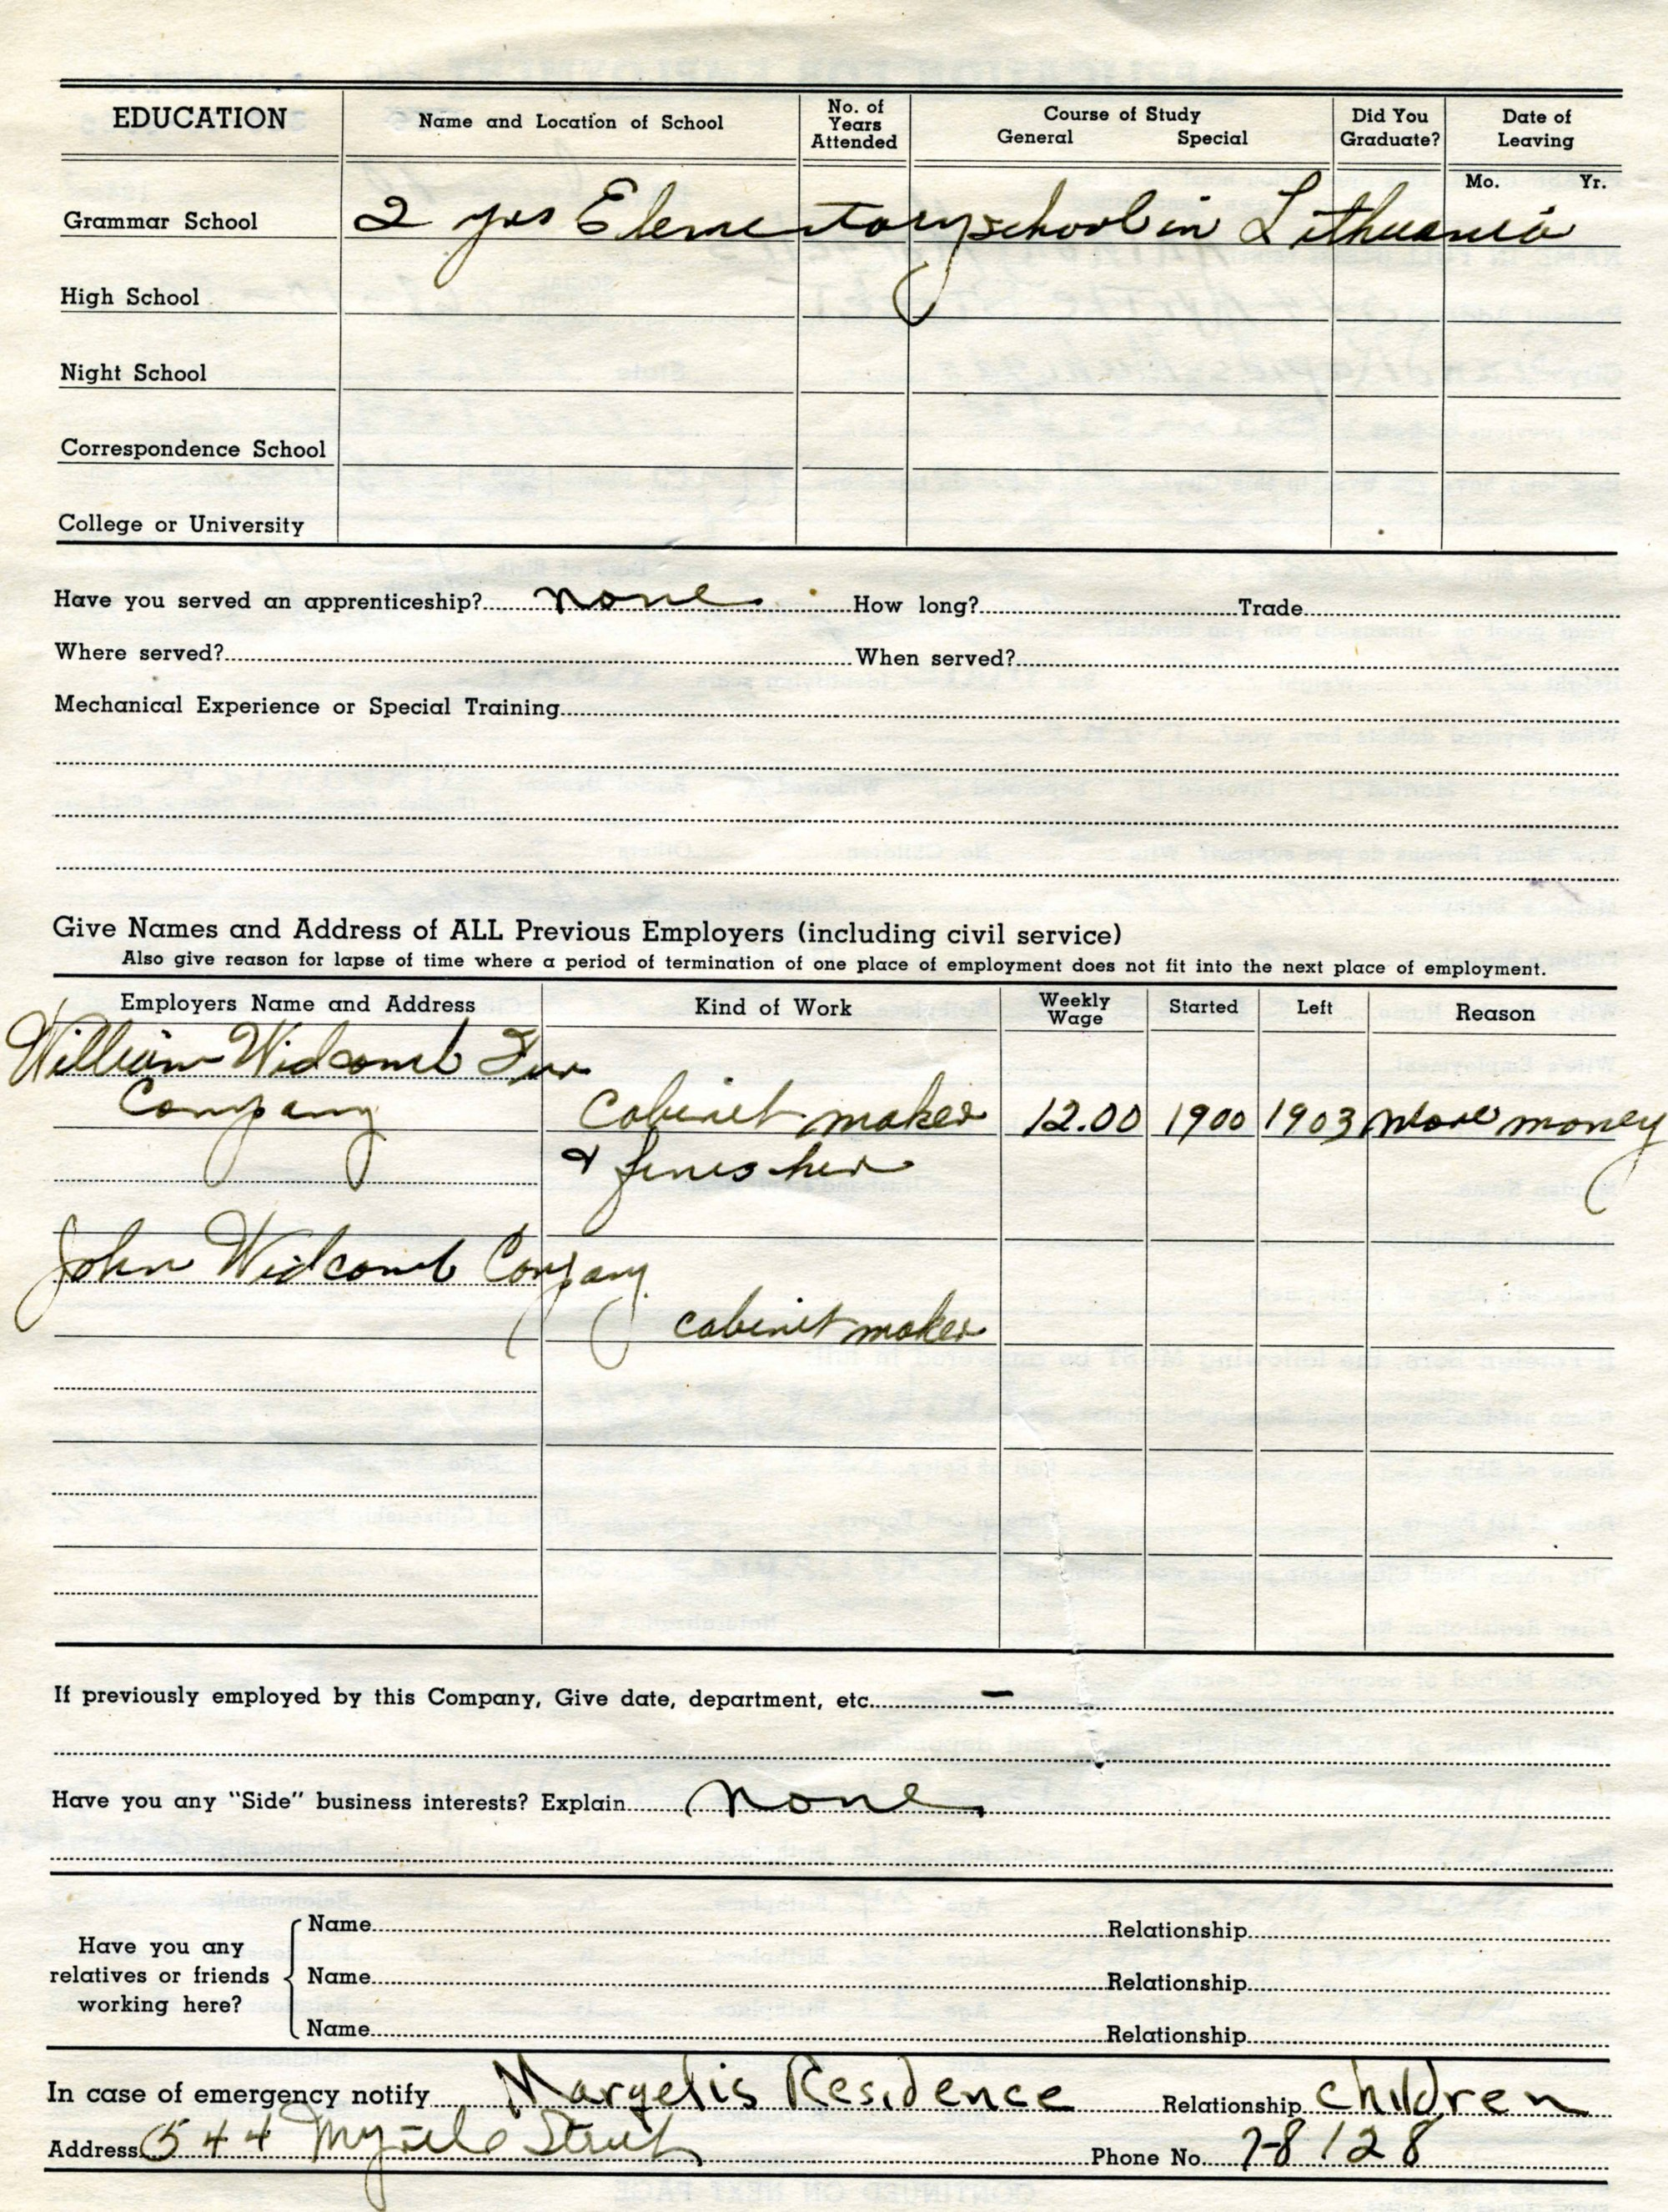 john widdicomb co employment application page 2 furniture city history